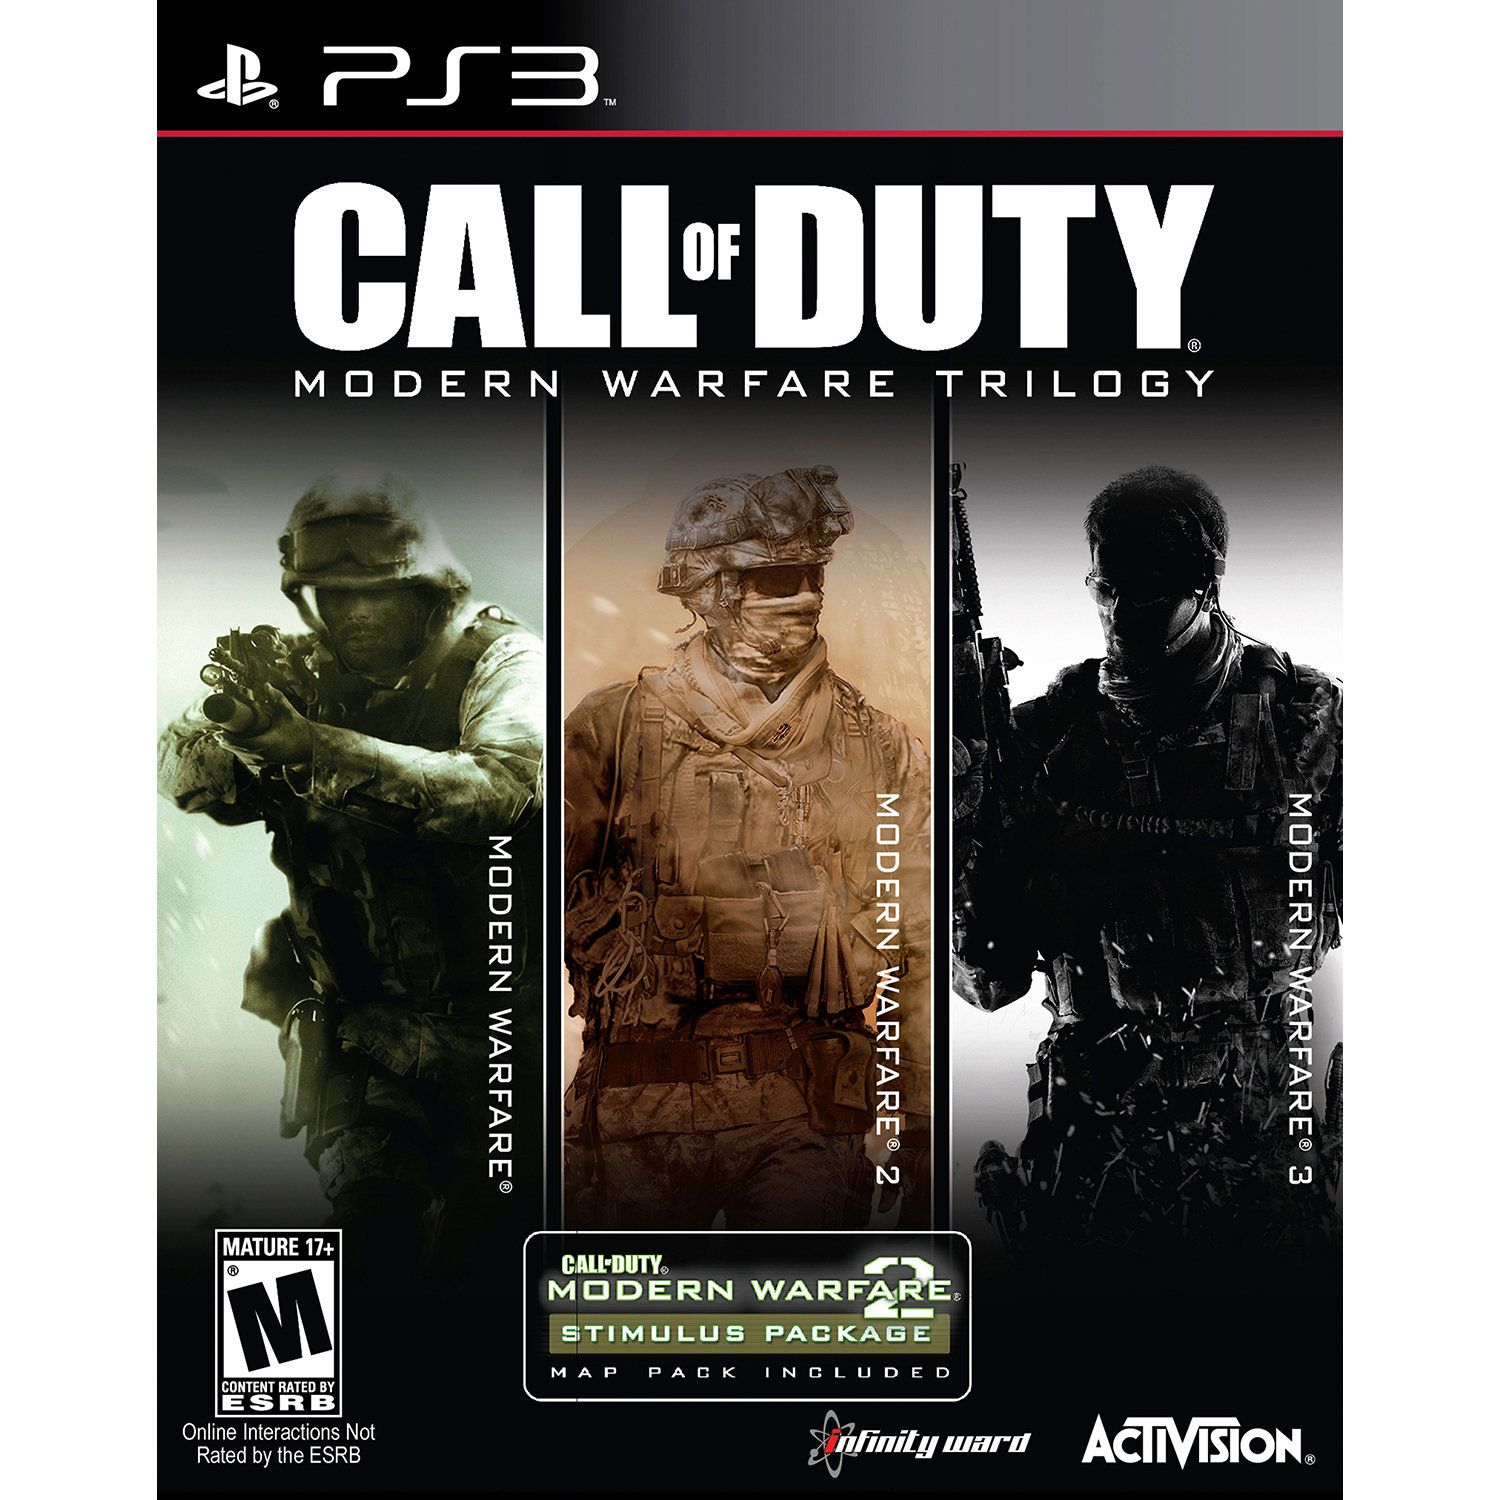 Call Of Duty Modern Warfare Trilogy For Ps3 Modern Warfare Call Of Duty Activision